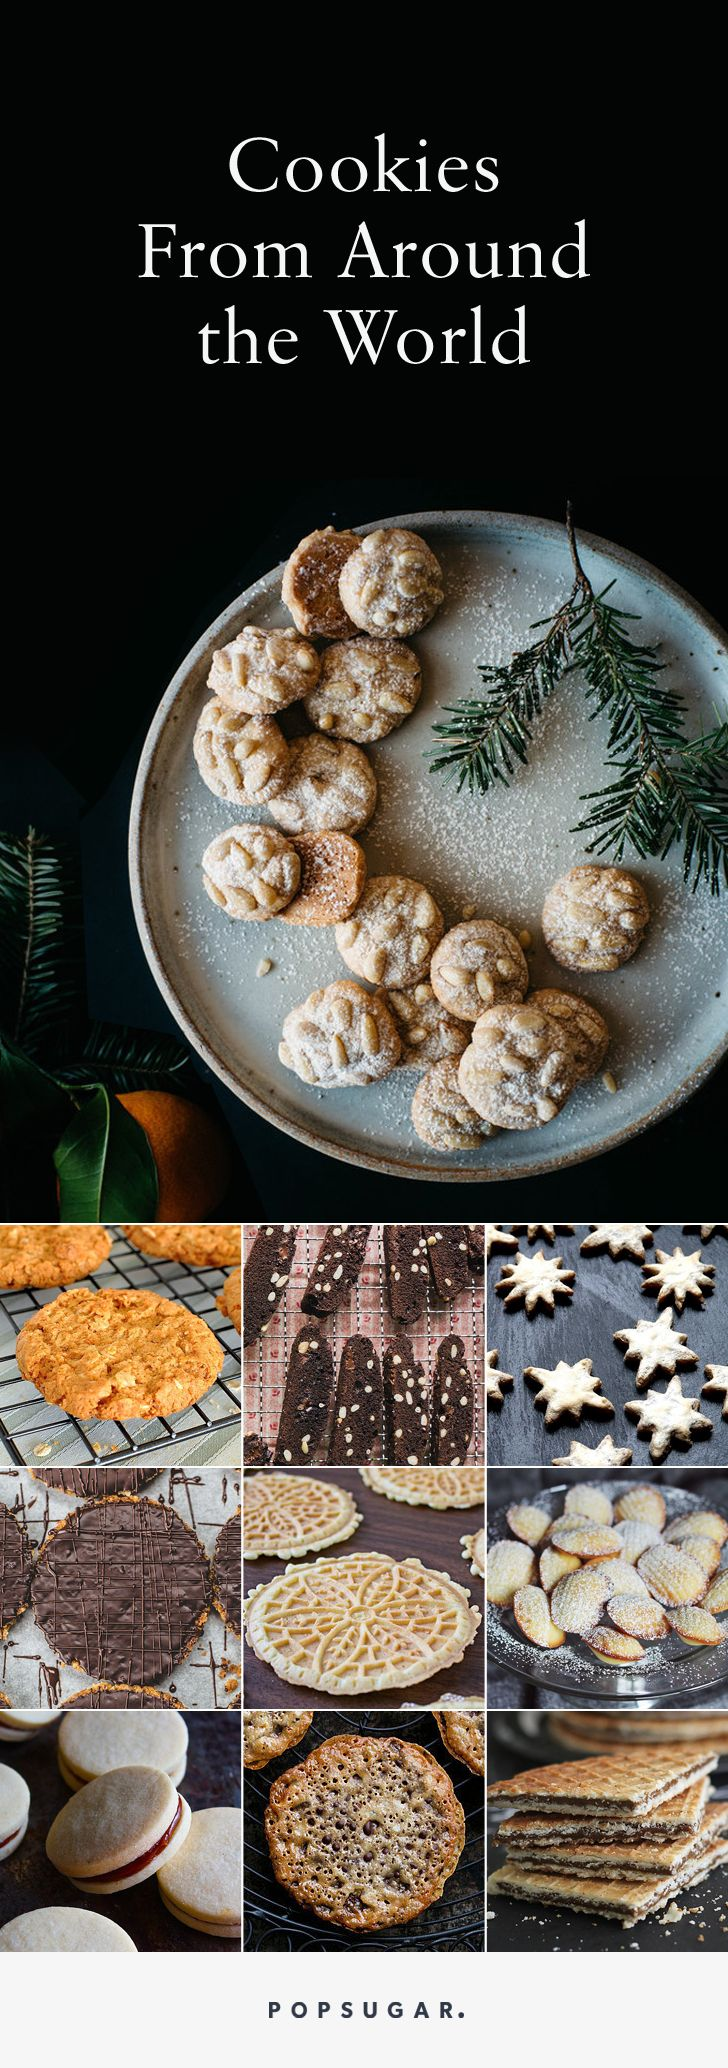 International christmas cookies- Alfajores, pizzelle, madeleines, pfeffernüsse, linzer, and more cookies from around the world.